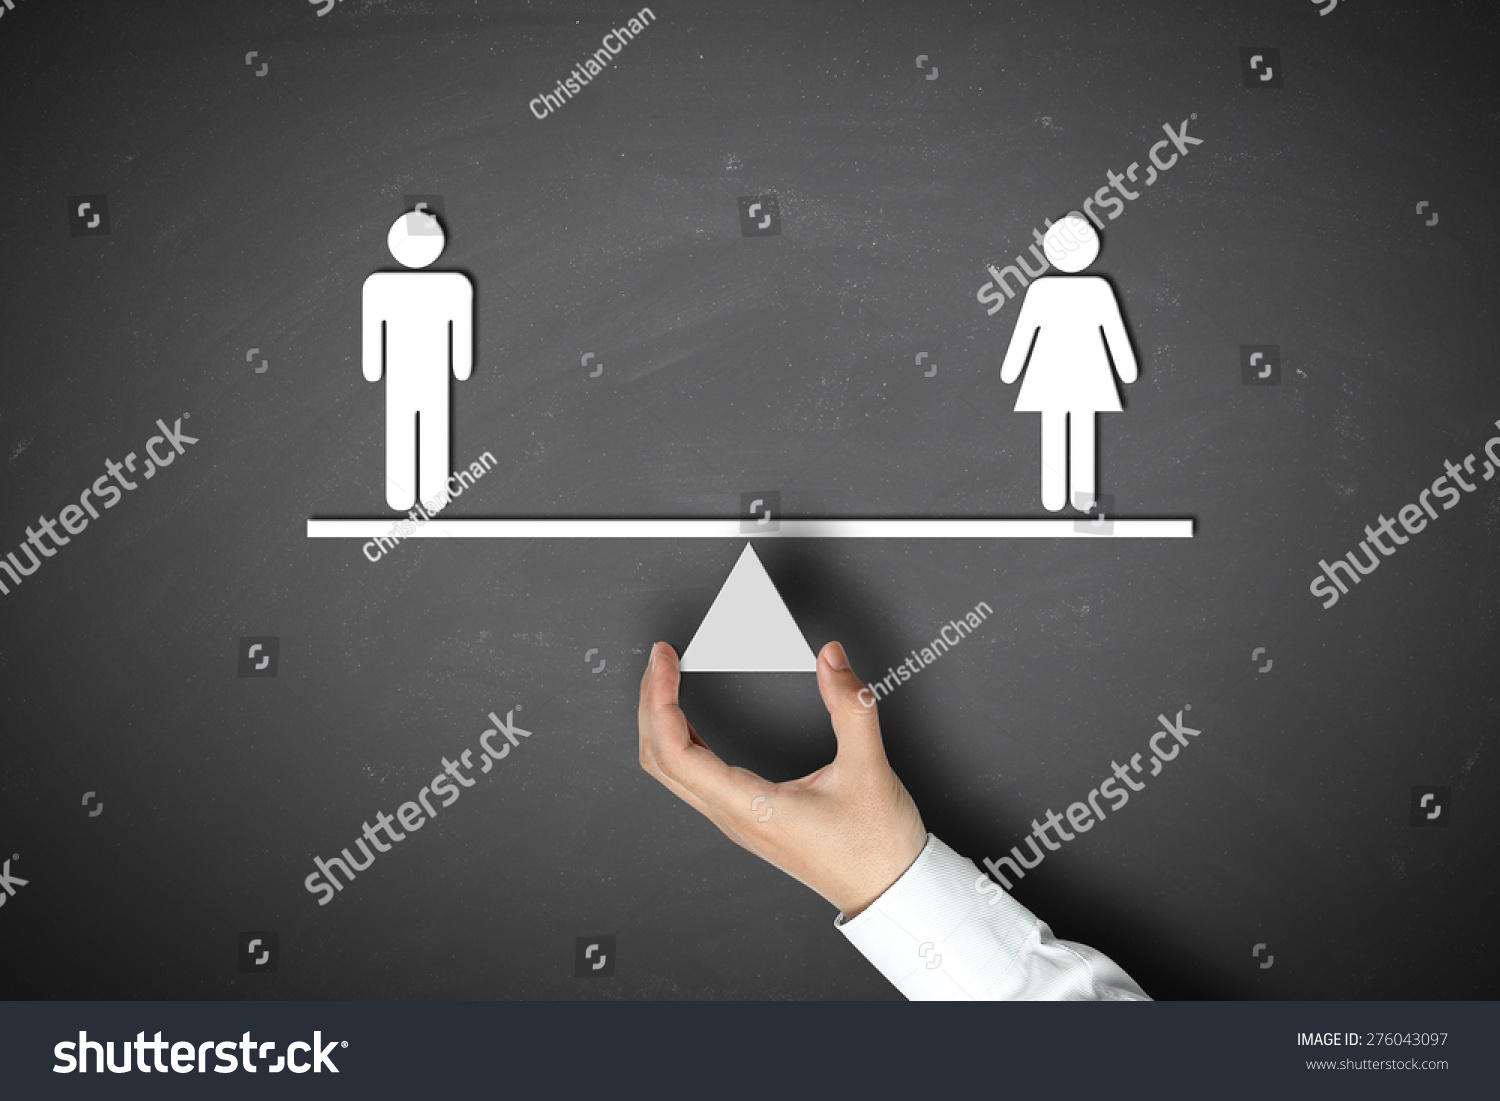 Technology Management Image: Male Equals Female Concept Businessman Hand Stock Photo